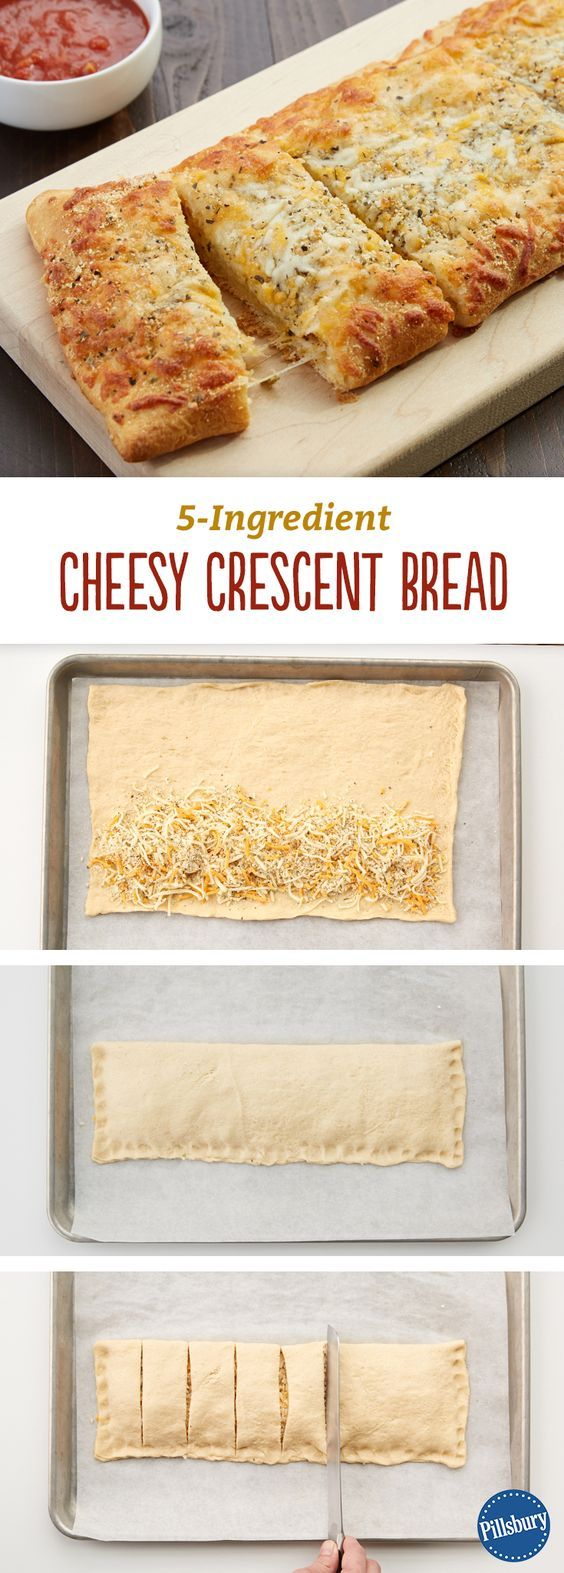 cheesy crescent bread recipe